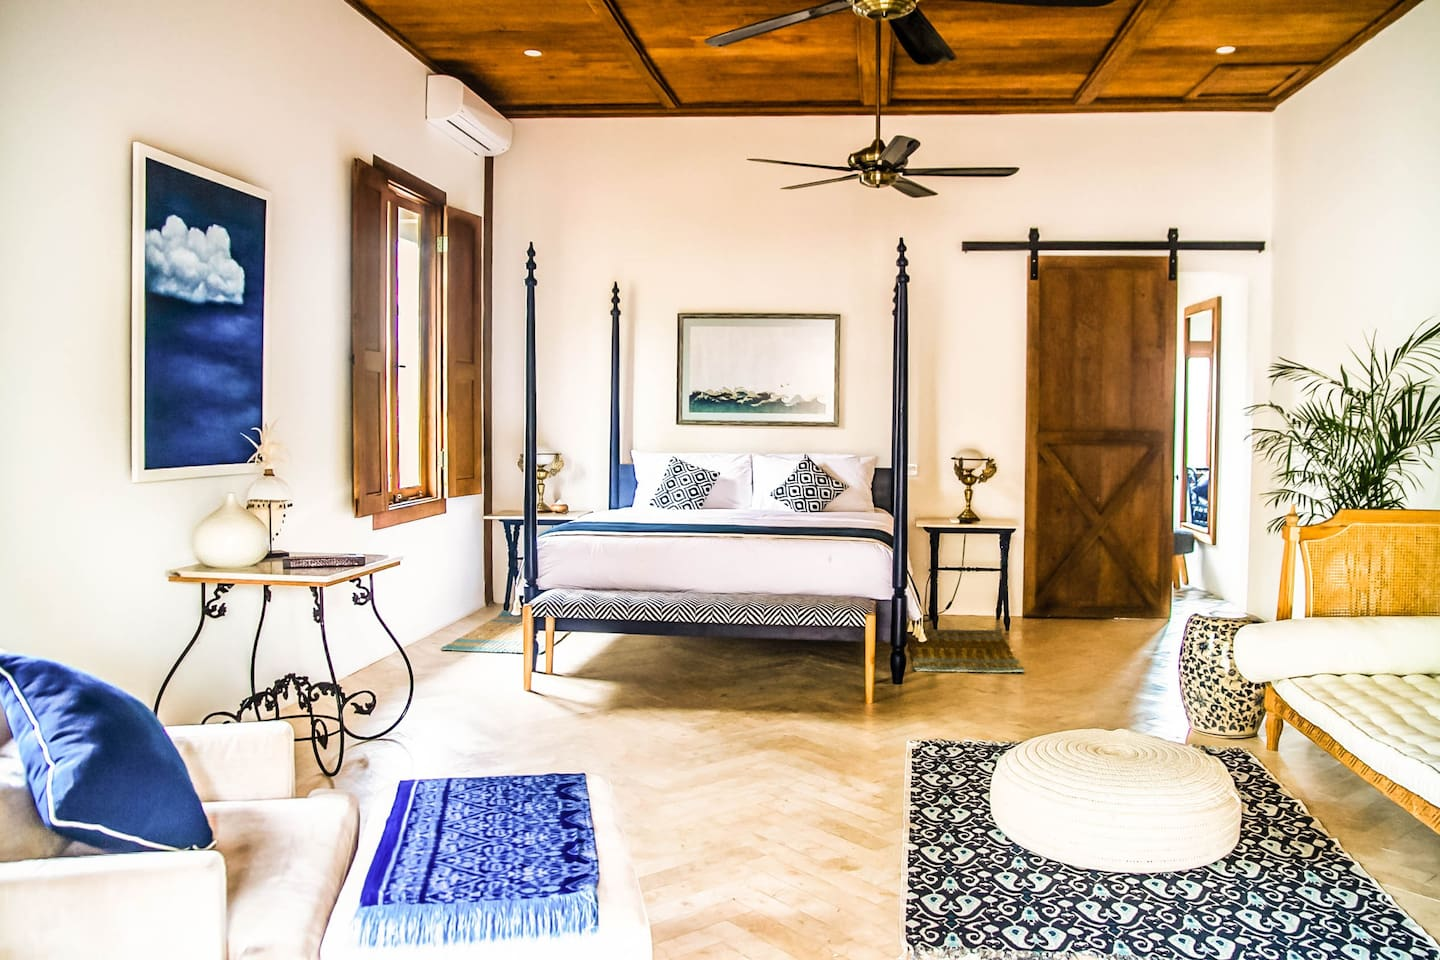 Indigo Luxury Master Suite - Swathed in exotic blue accents and hand crafted four posted king bed.  Features beautiful rattan colonial day bed, reading lounge, antique brass lamps and bold patterns bring this suite together in a calm relaxed harmony.